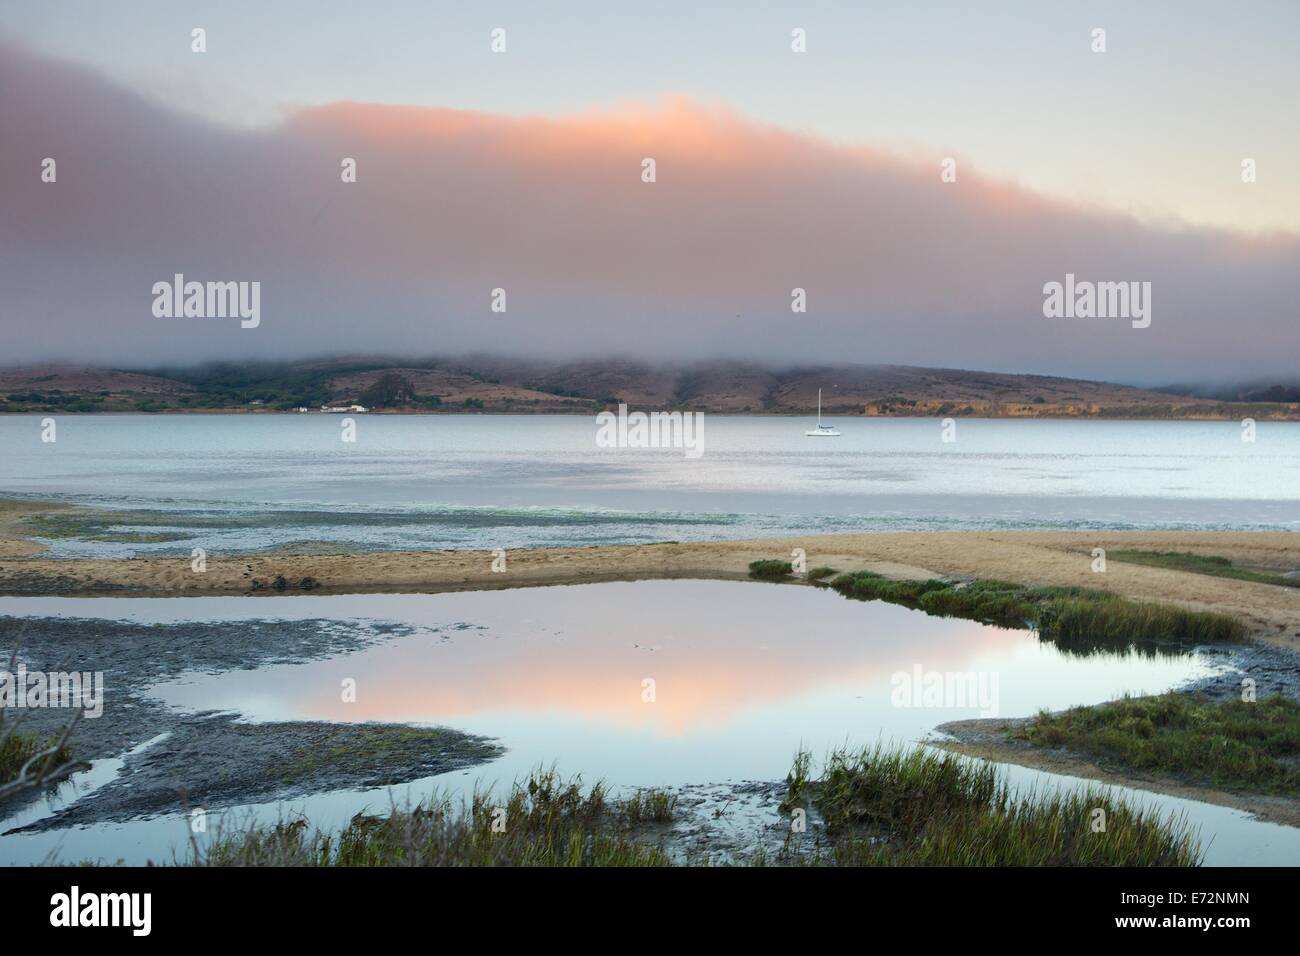 Wetland marshes in Tomales Bay in Point Reyes National Seashore, Marin County, California. - Stock Image